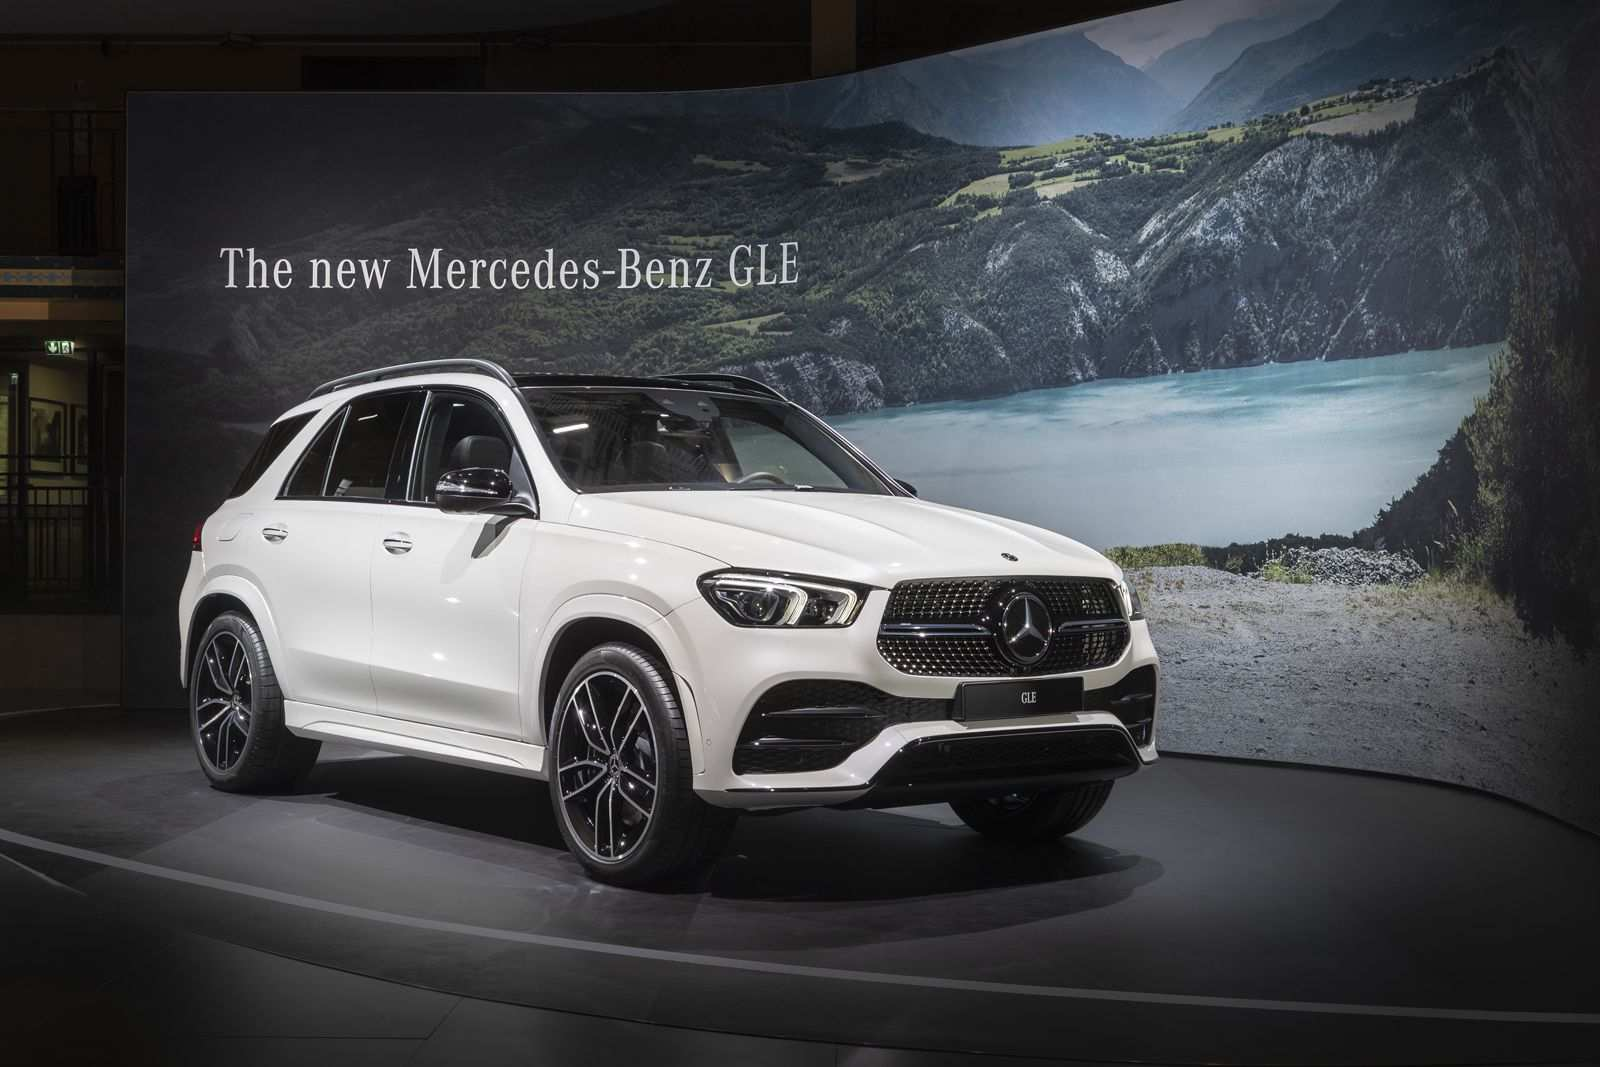 58 Gallery of New Mercedes 2019 Hybrid Price And Review Overview by New Mercedes 2019 Hybrid Price And Review